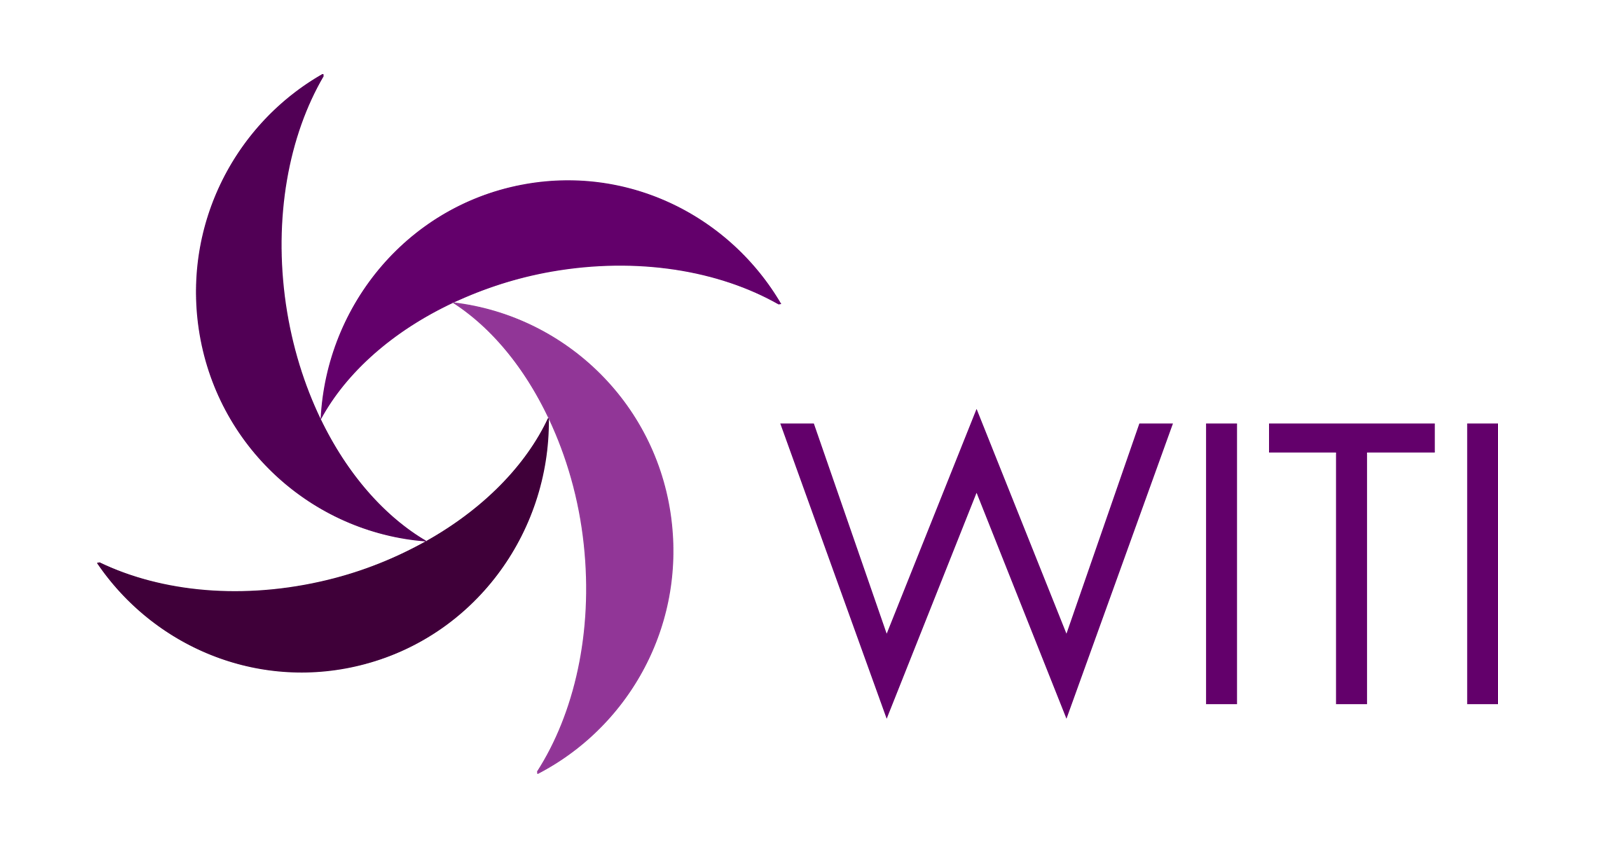 WITI - Women in Technology International